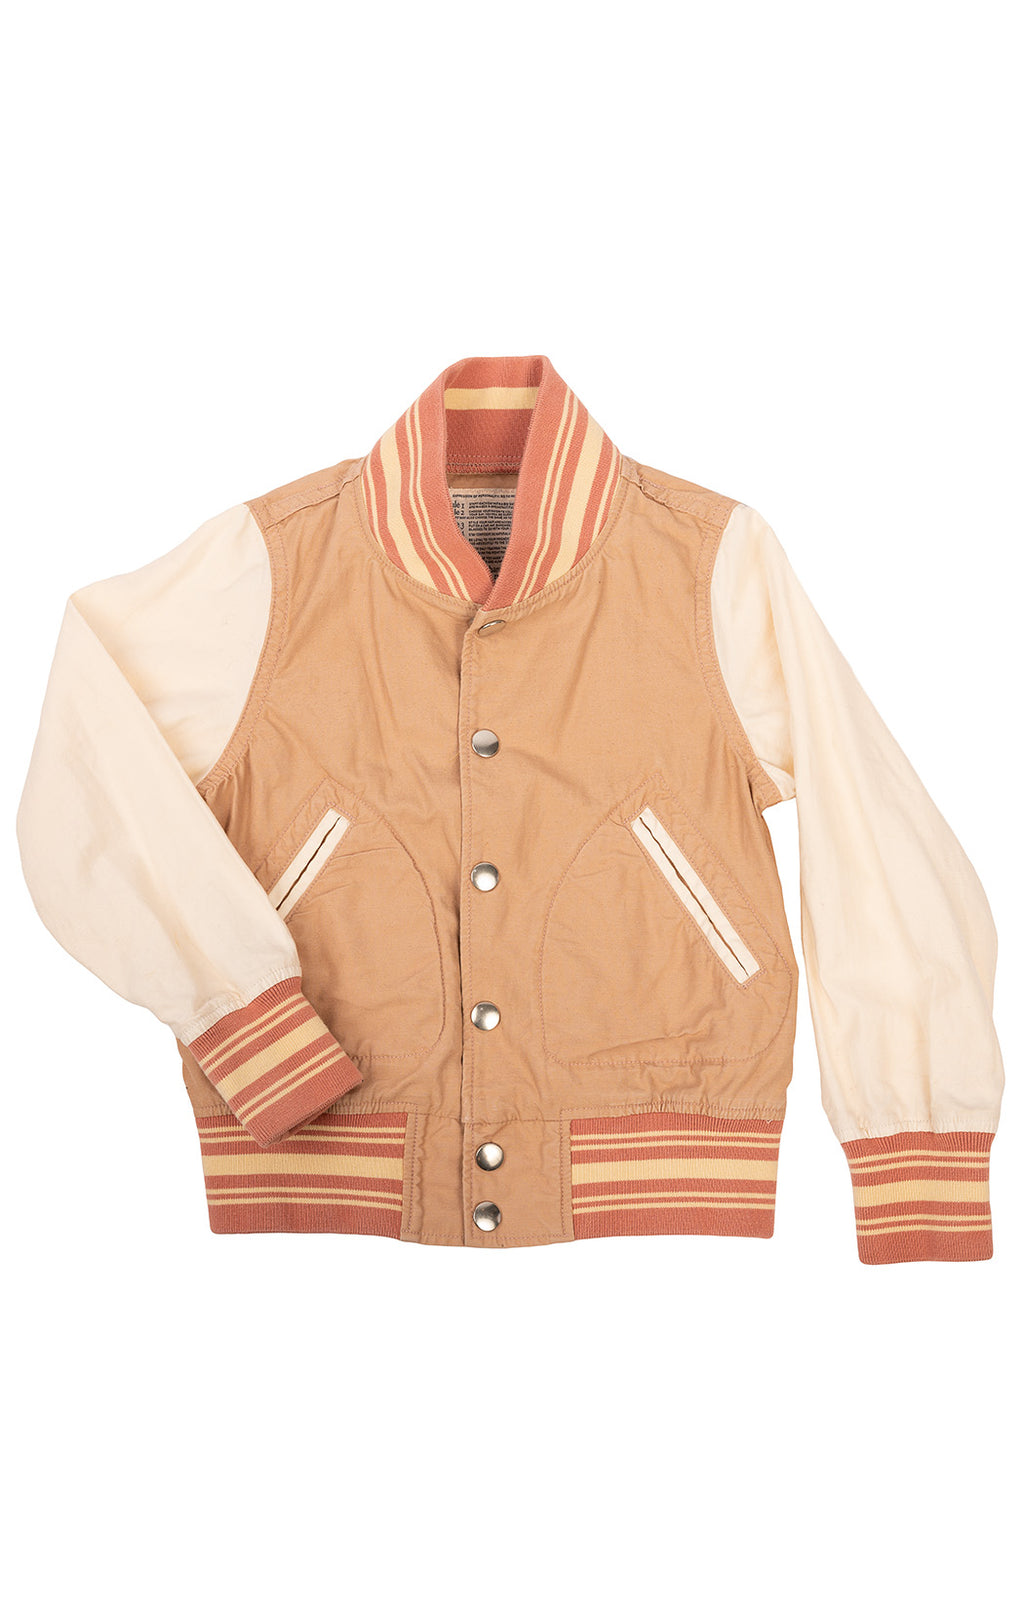 GO TO HOLLYWOOD  Jacket Size: No size tags fits like 4-5